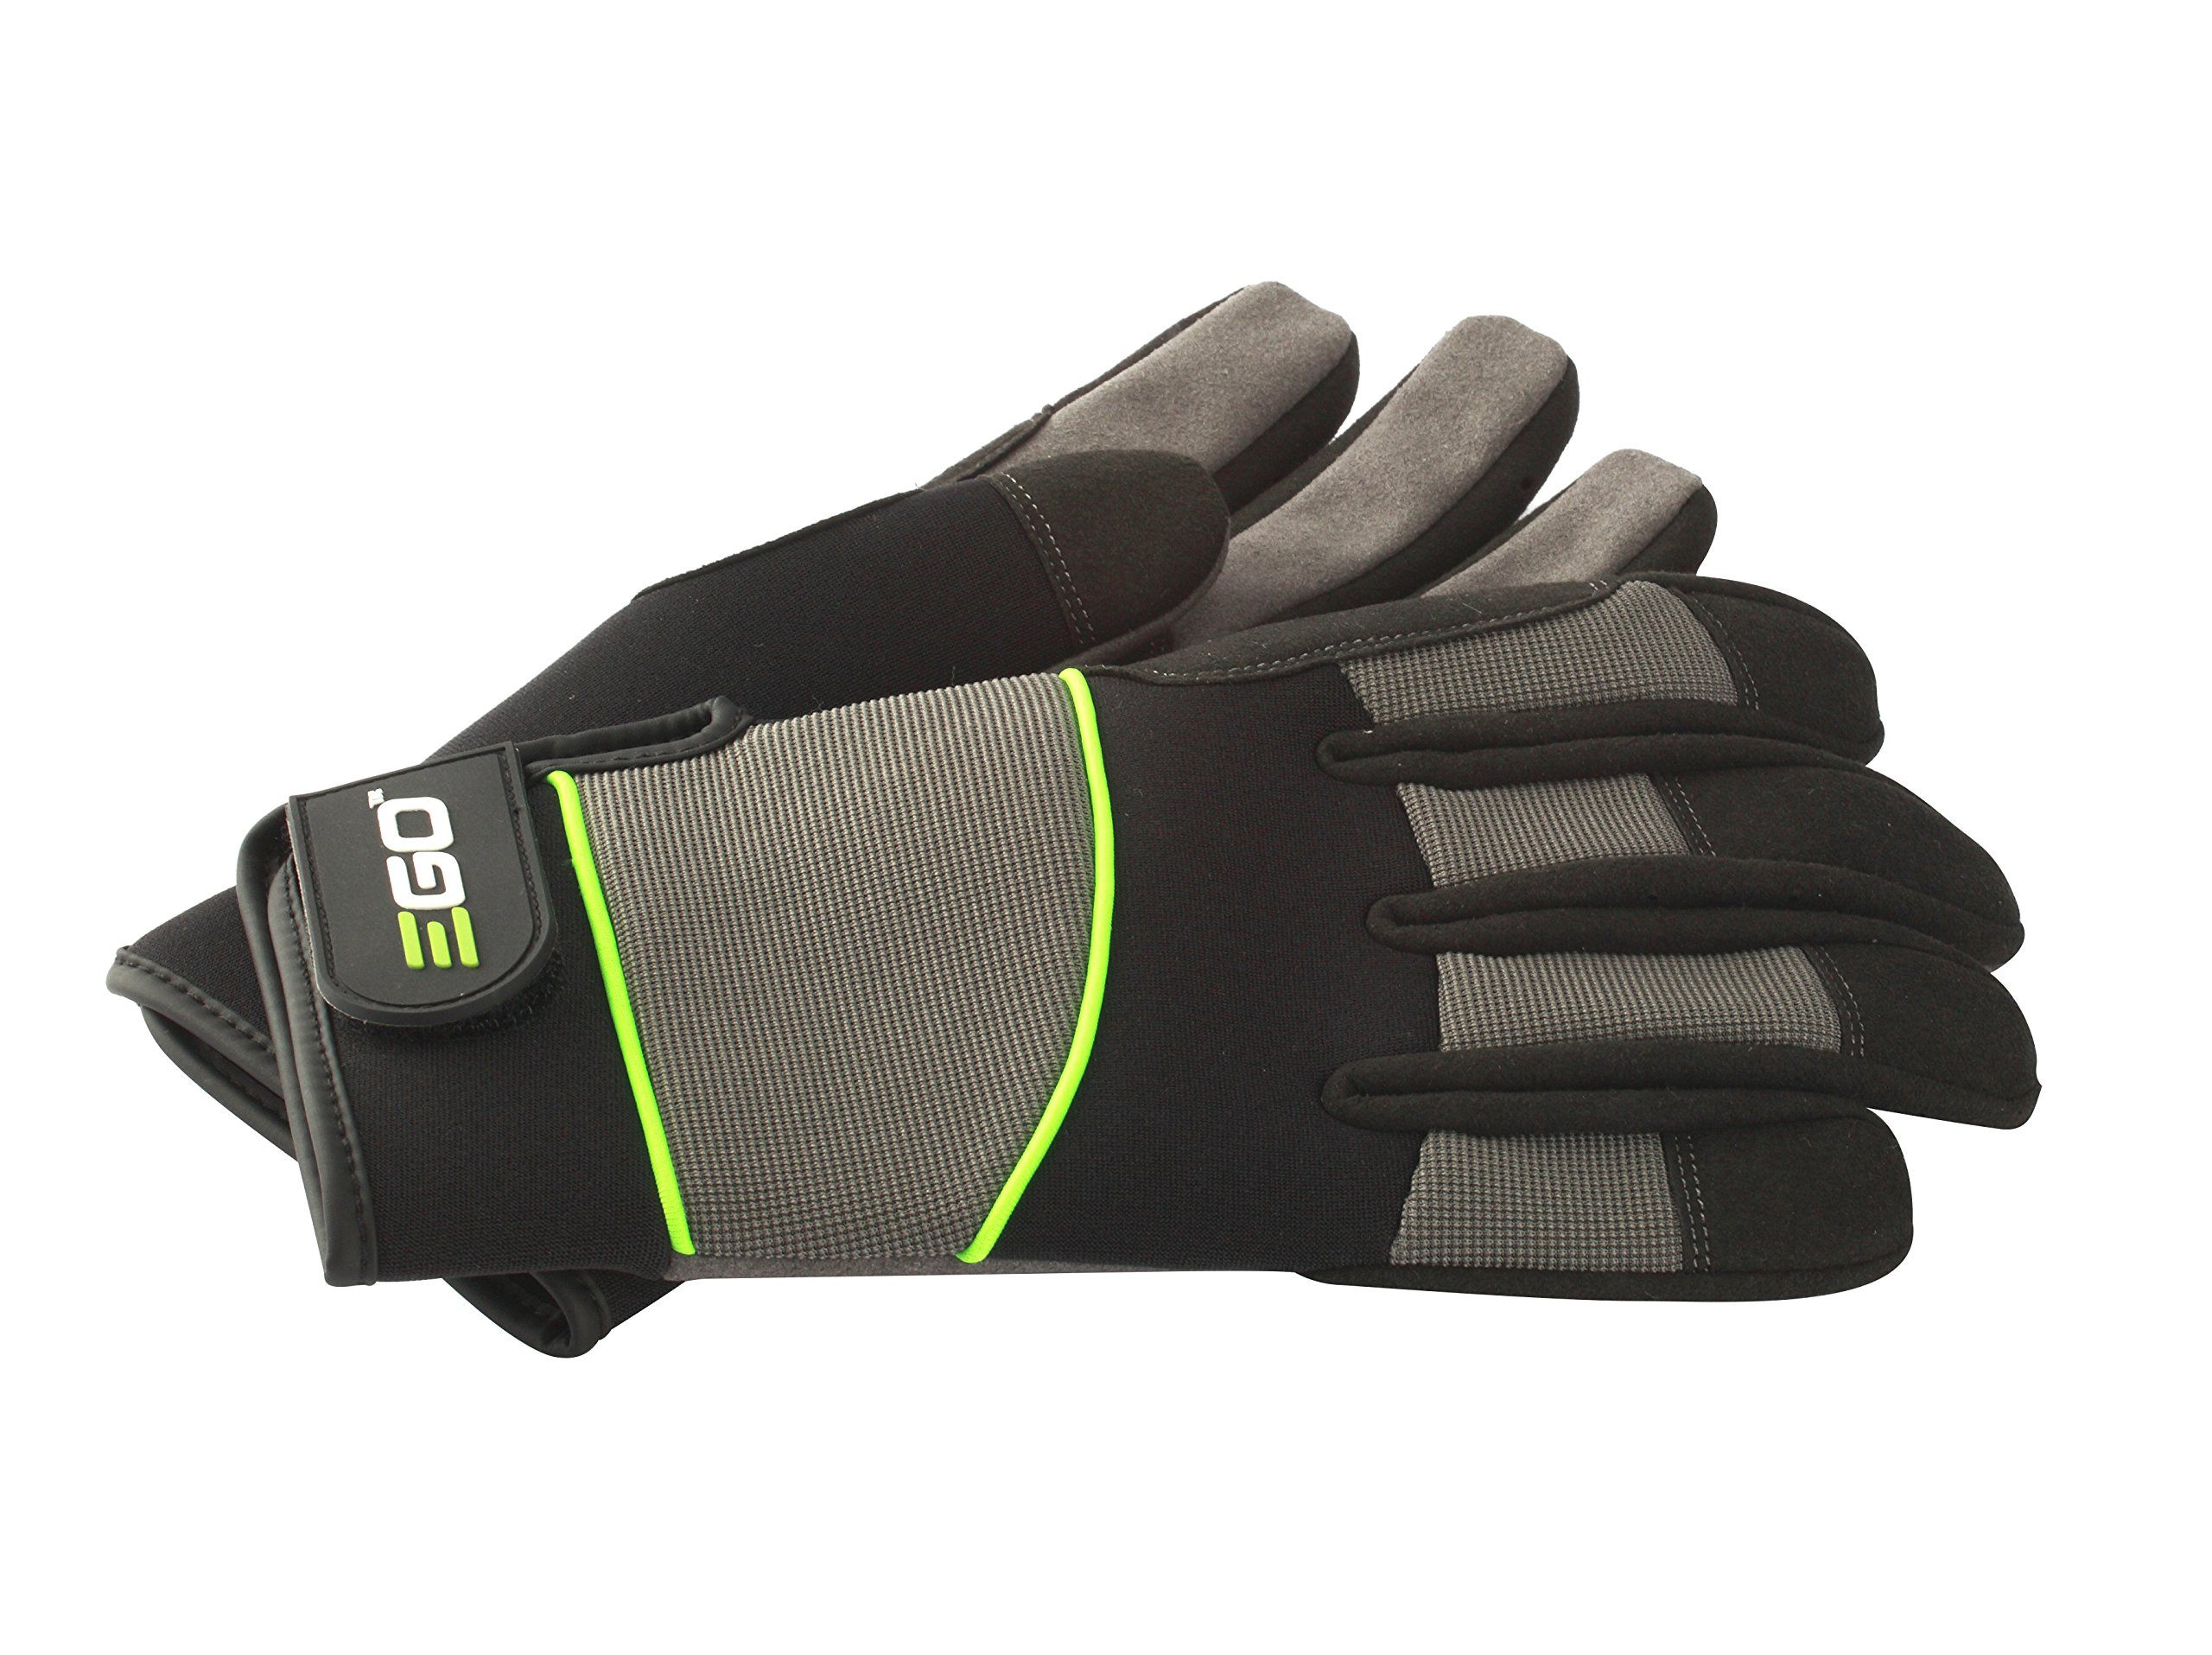 EGO Power+ GV001M Durable Synthetic Breathable Work Gloves with Reinforced Protection, Medium